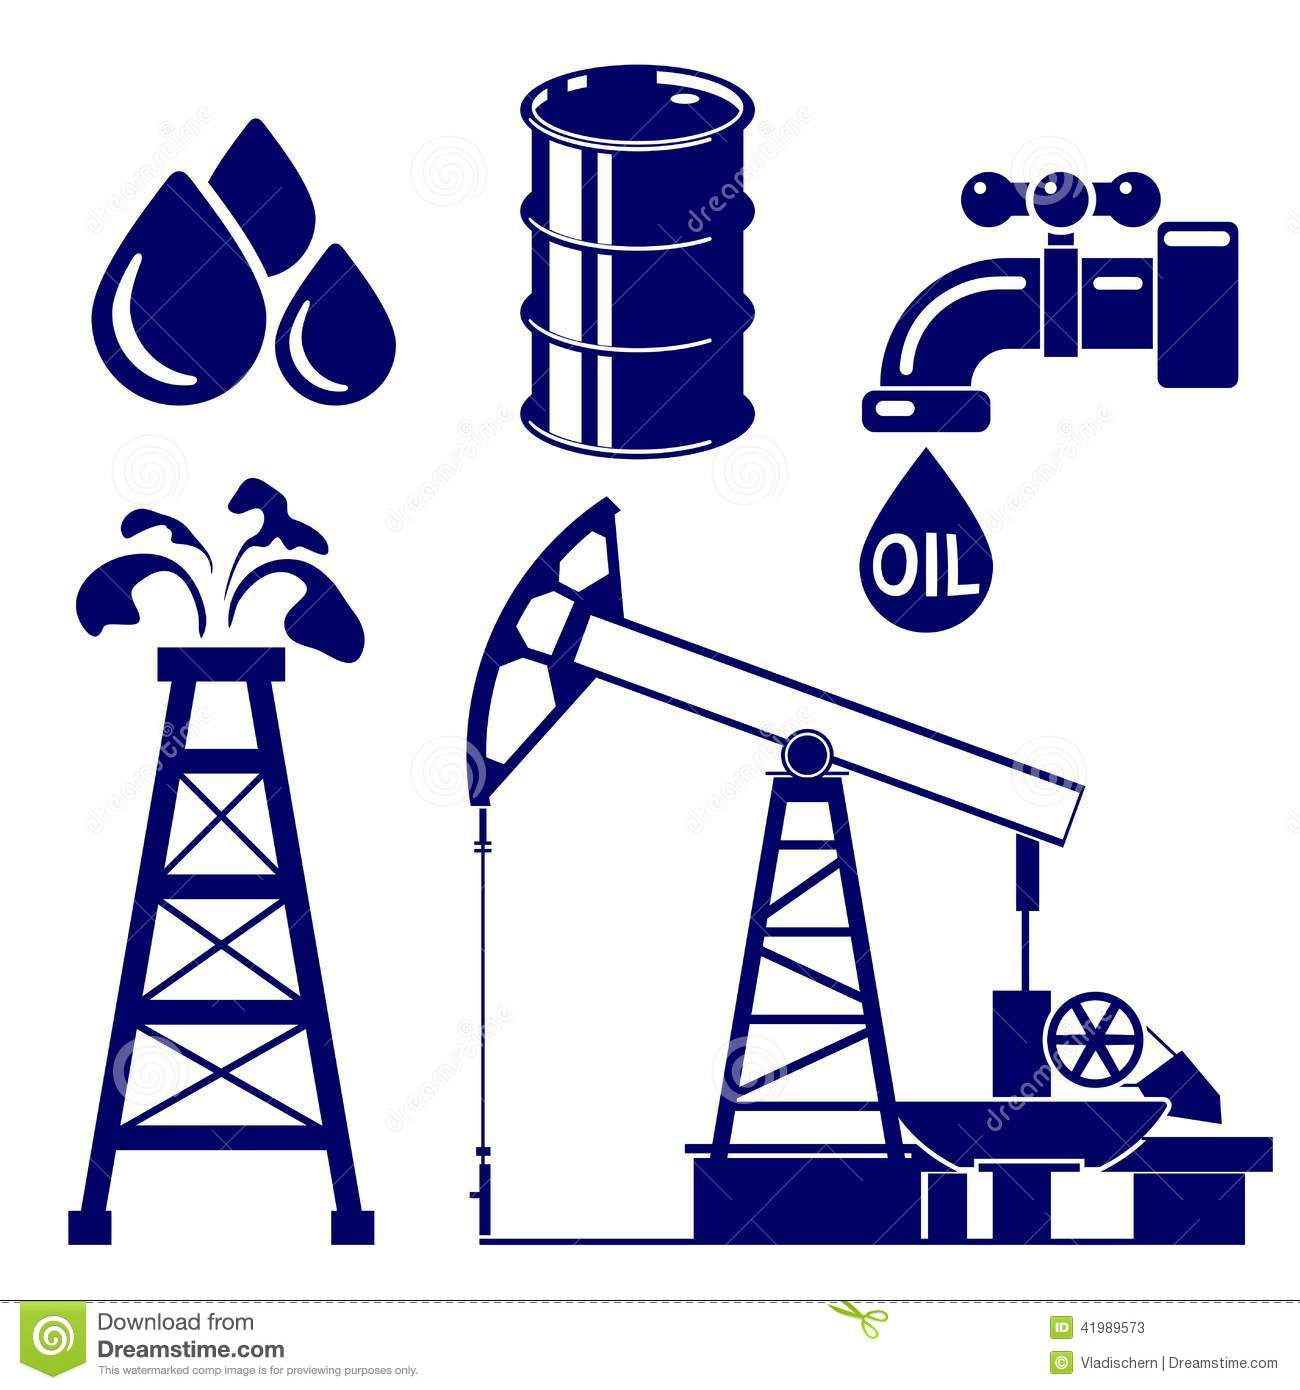 Oil exploration clipart.